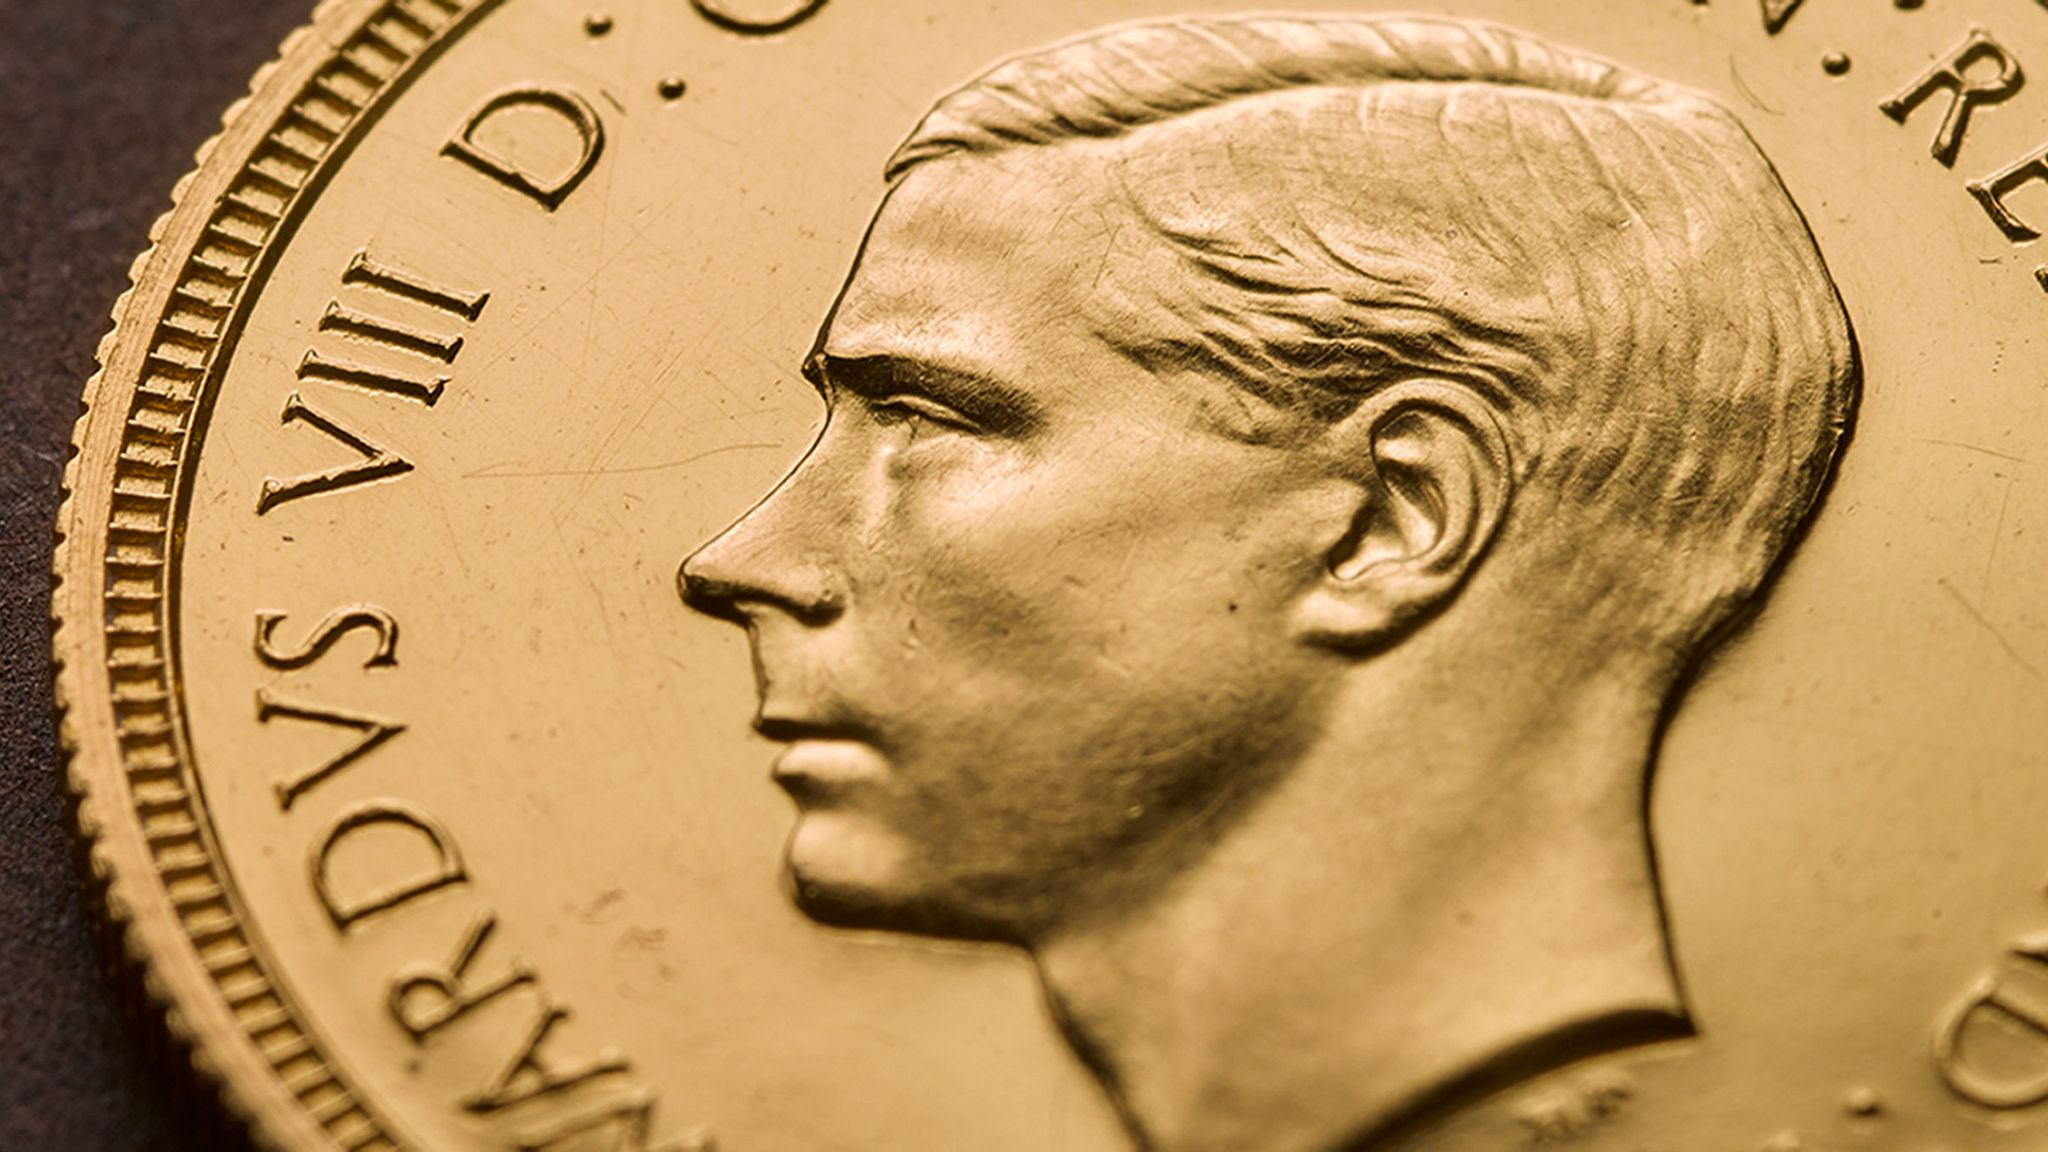 Rare Edward VIII sovereign coin sells for £1m - and why he's facing the wrong way